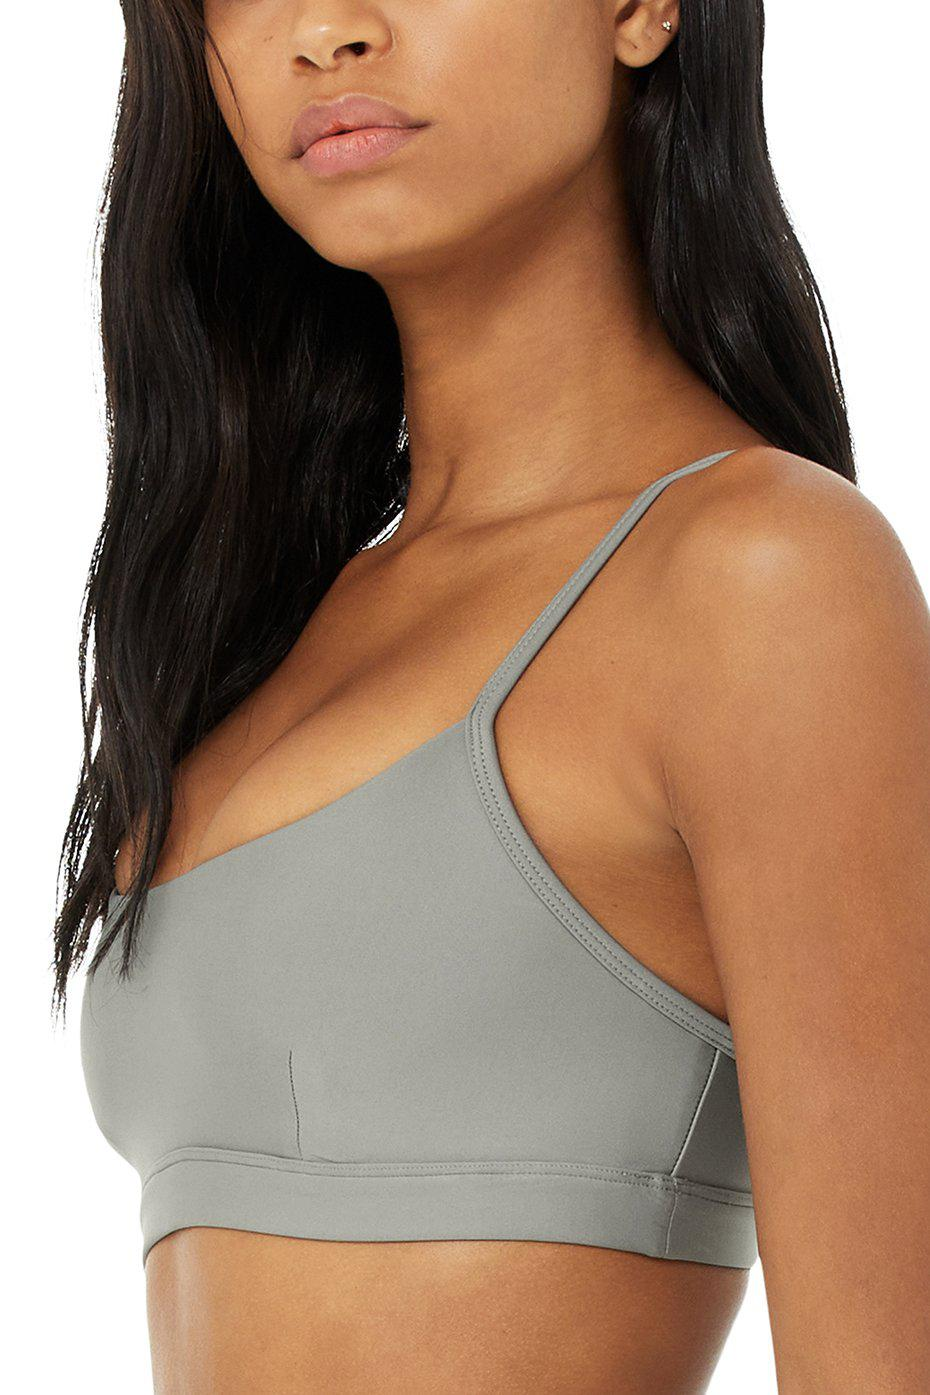 Airlift Intrigue Bra - Sterling 3